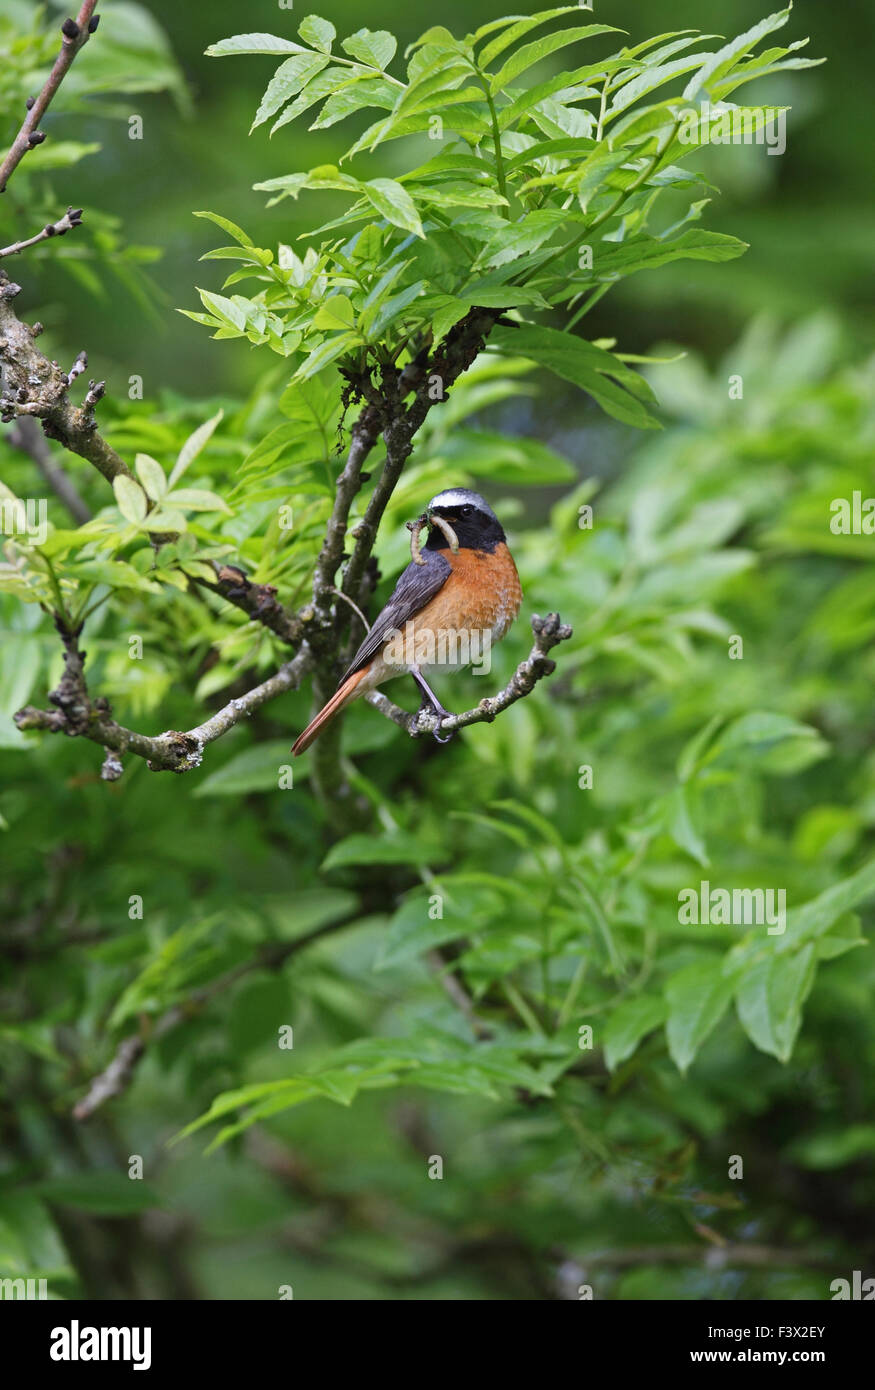 Male perching on ash tree branch with beakfull of caterpillers Carmarthenshire june 2015 - Stock Image